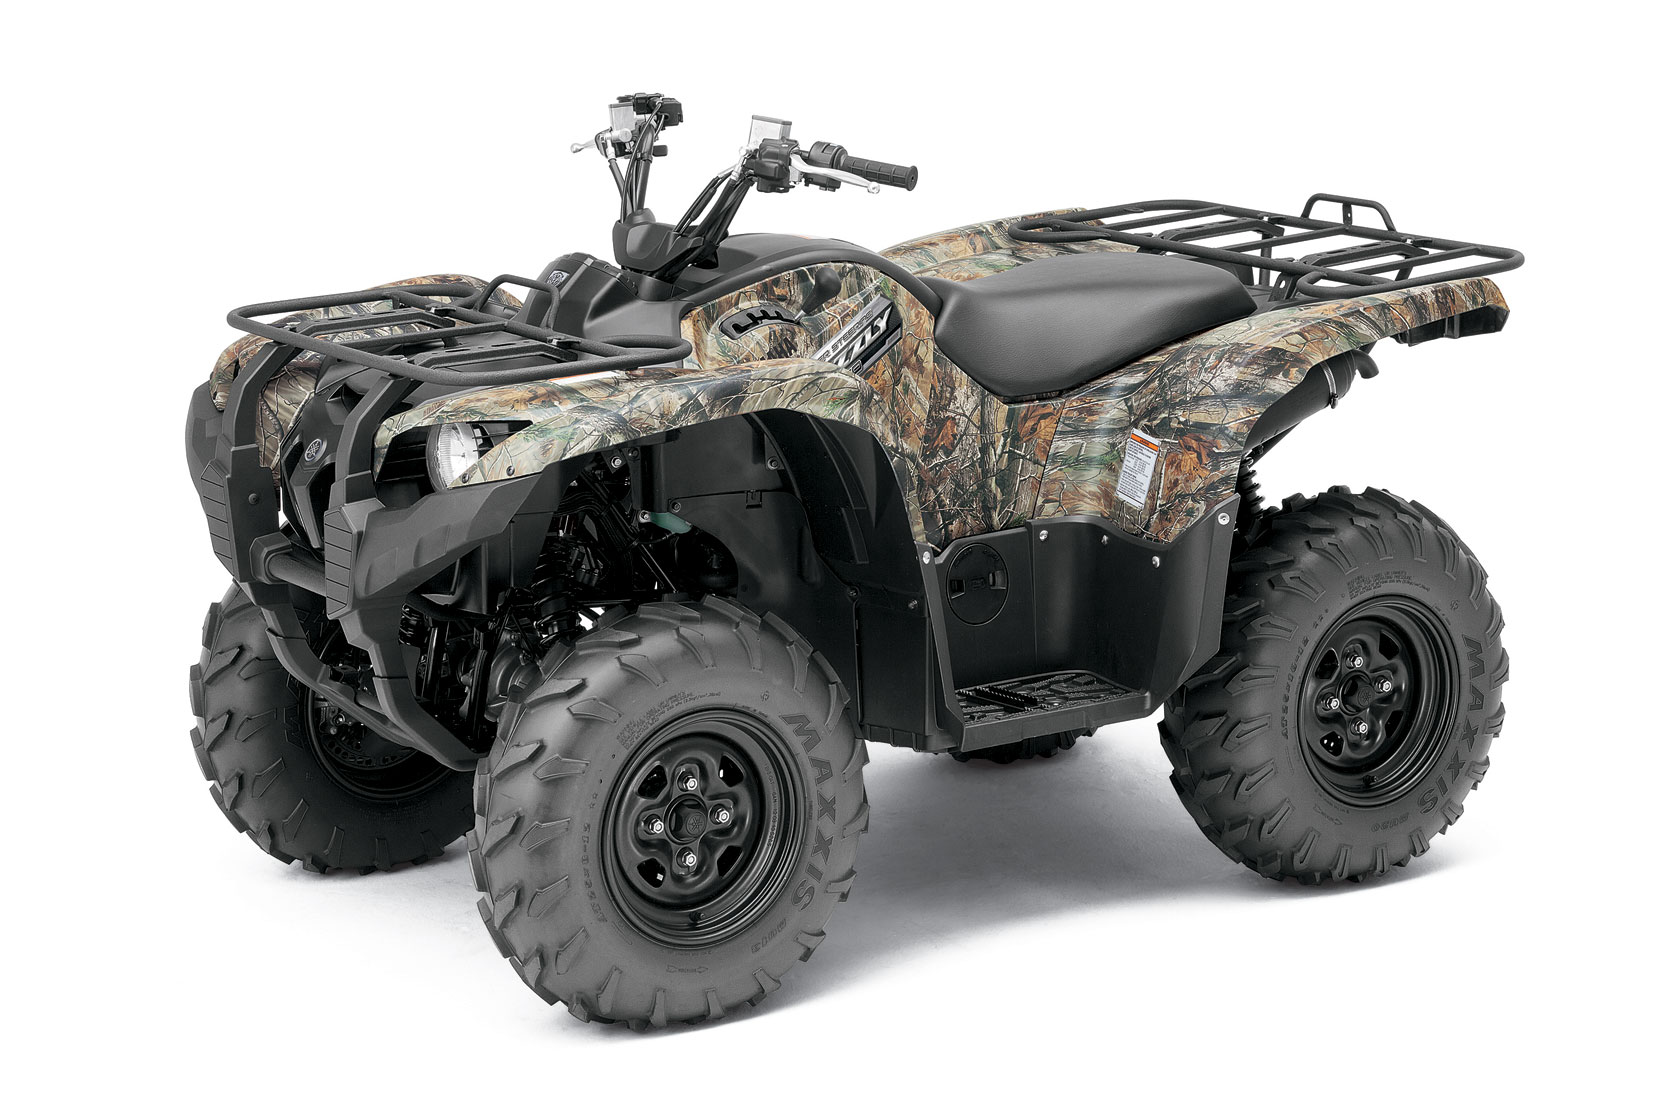 2012 Yamaha Grizzly 550 FI Auto 4x4 EPS Review